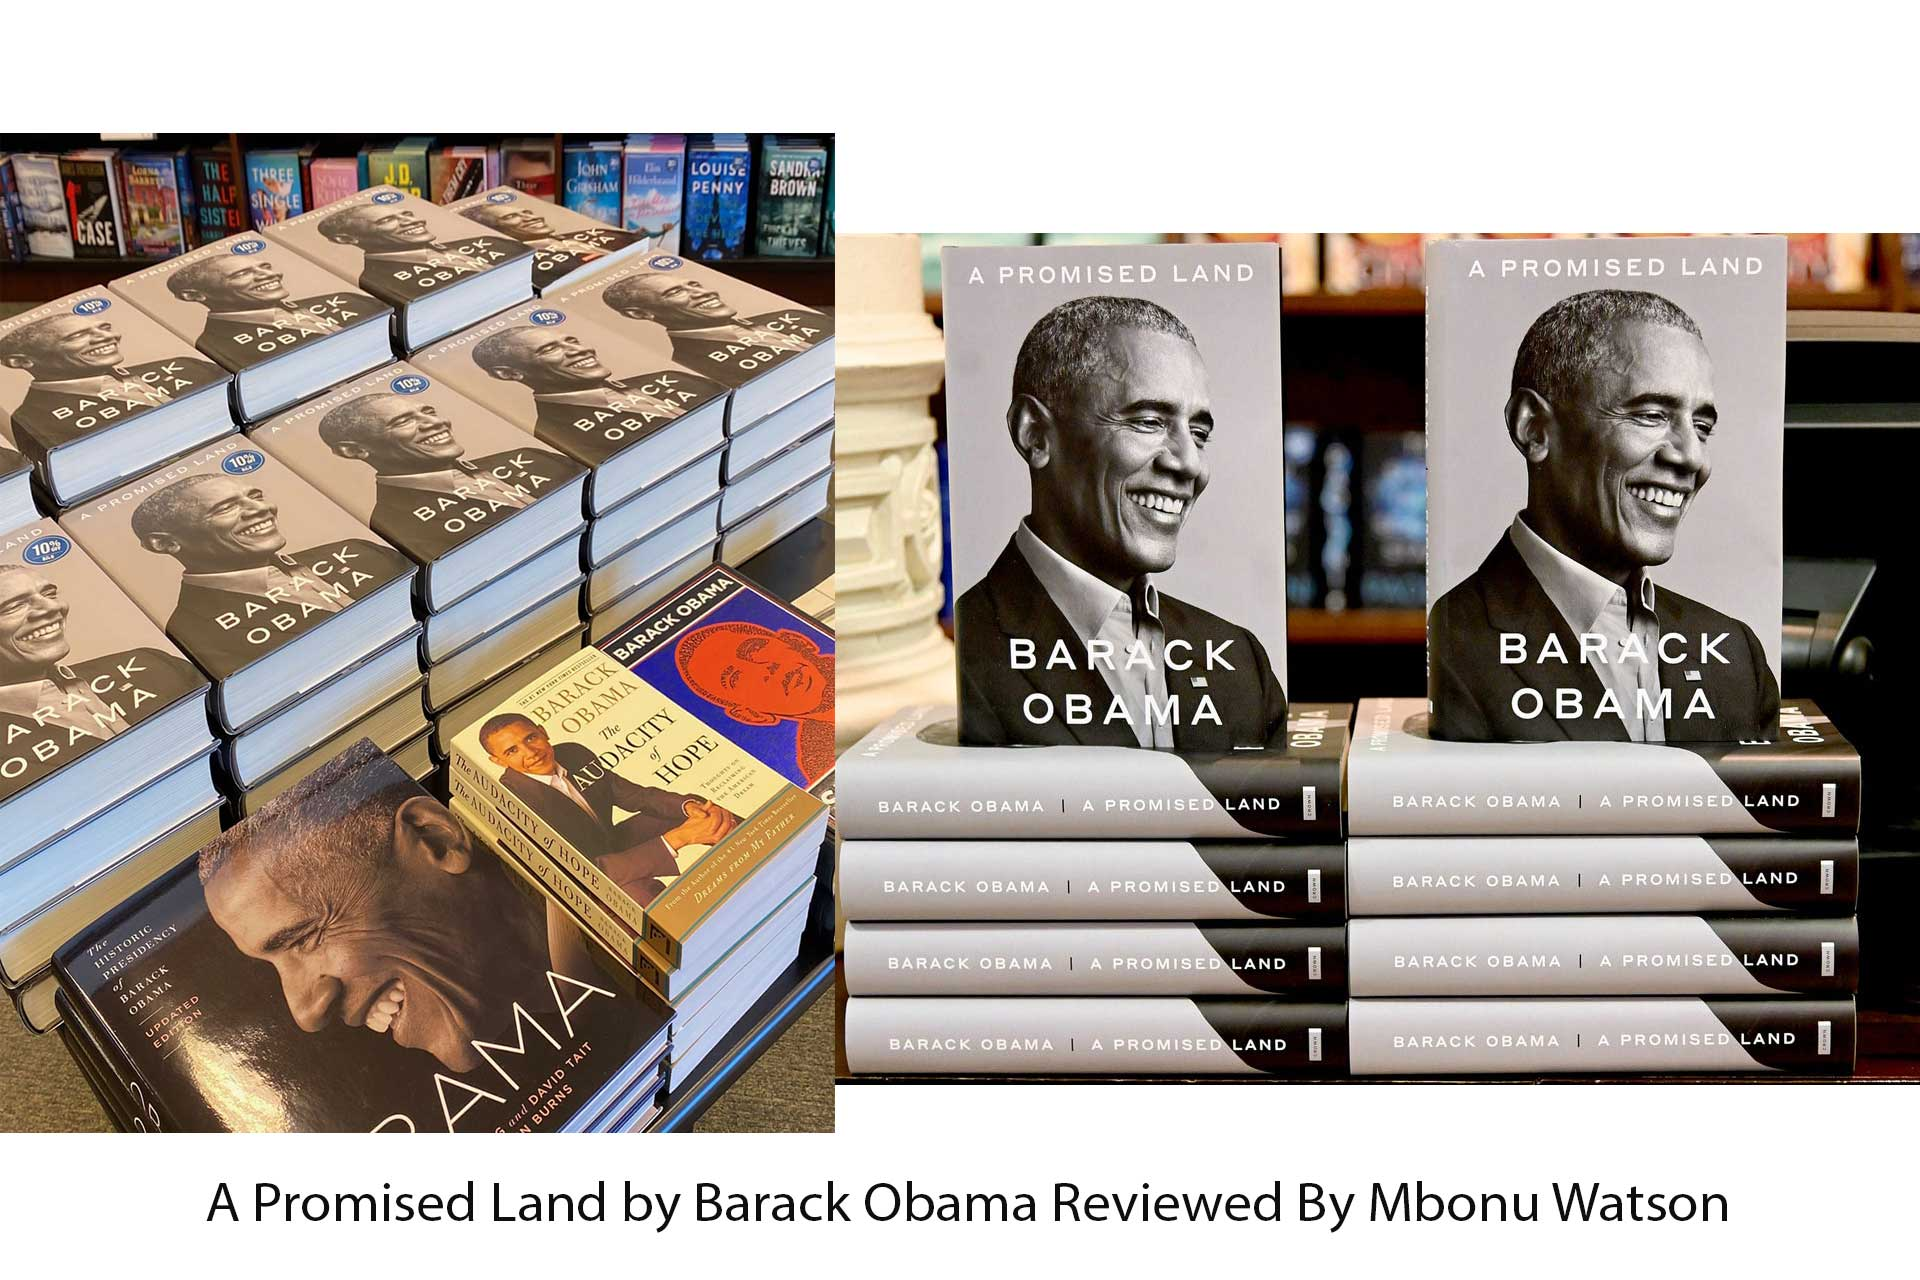 A Promised Land by Barack Obama Reviewed By Mbonu Watson